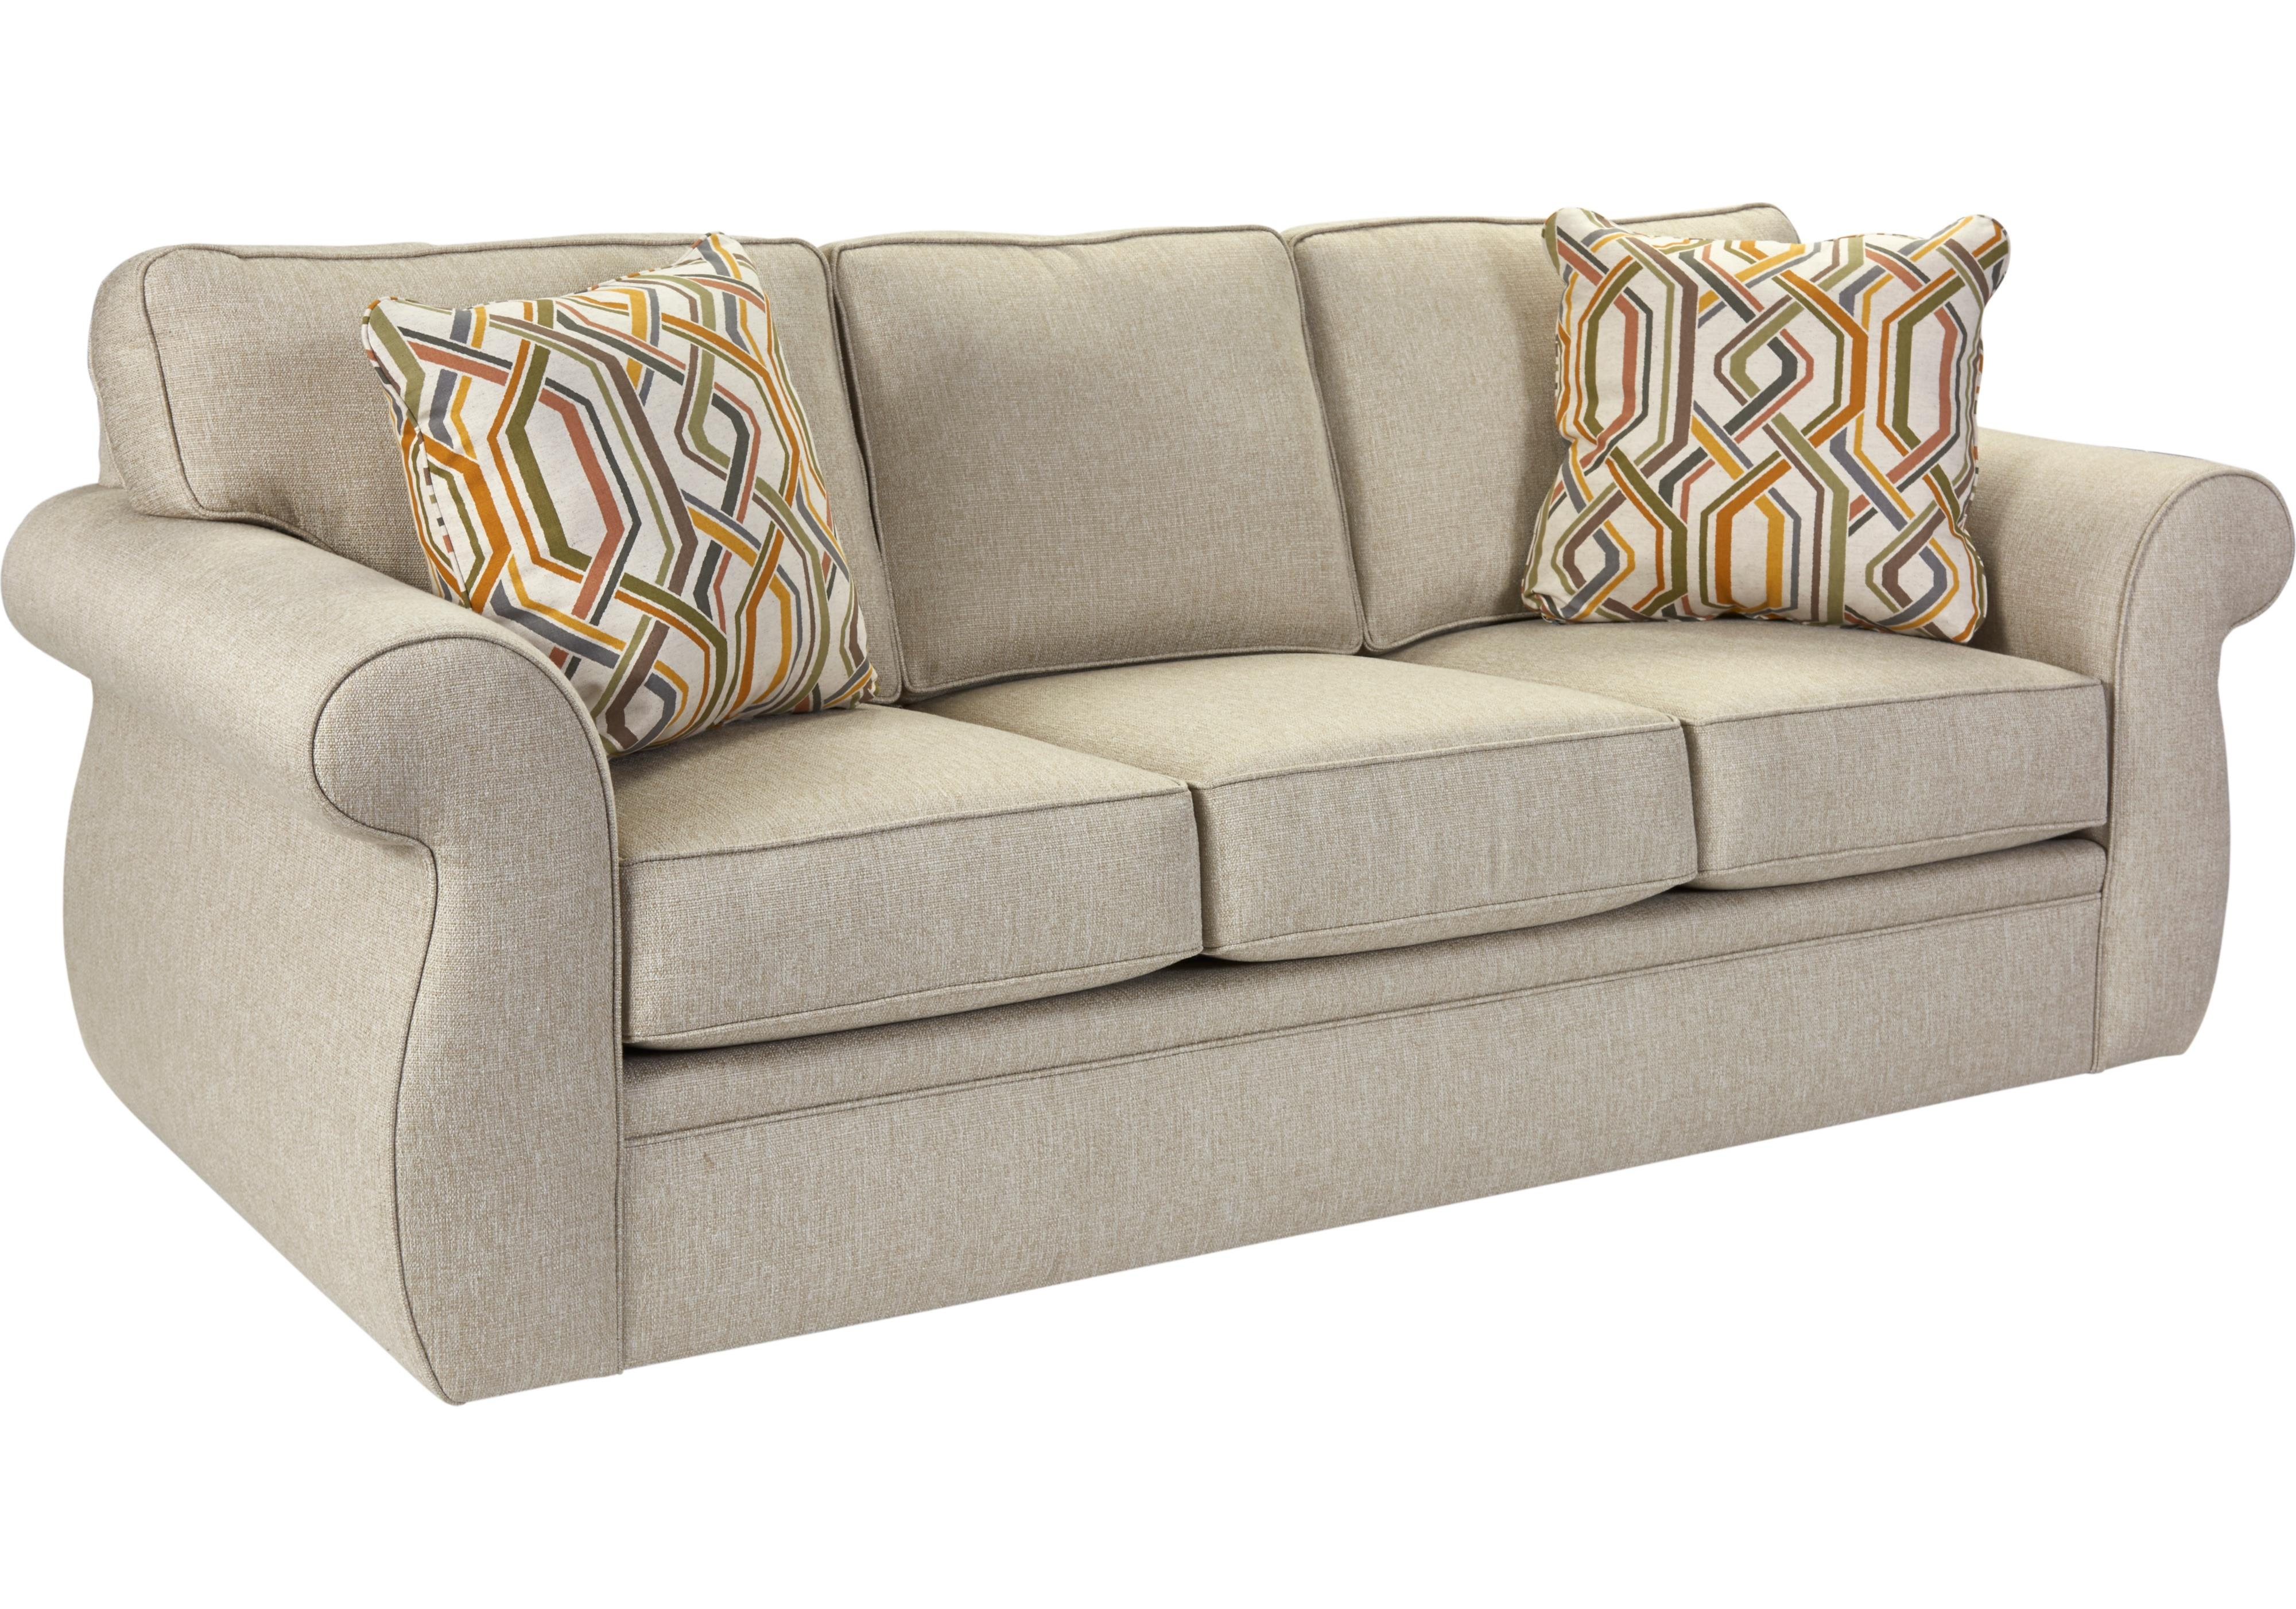 Broyhill Furniture Veronica Traditional Sofa with Oversize